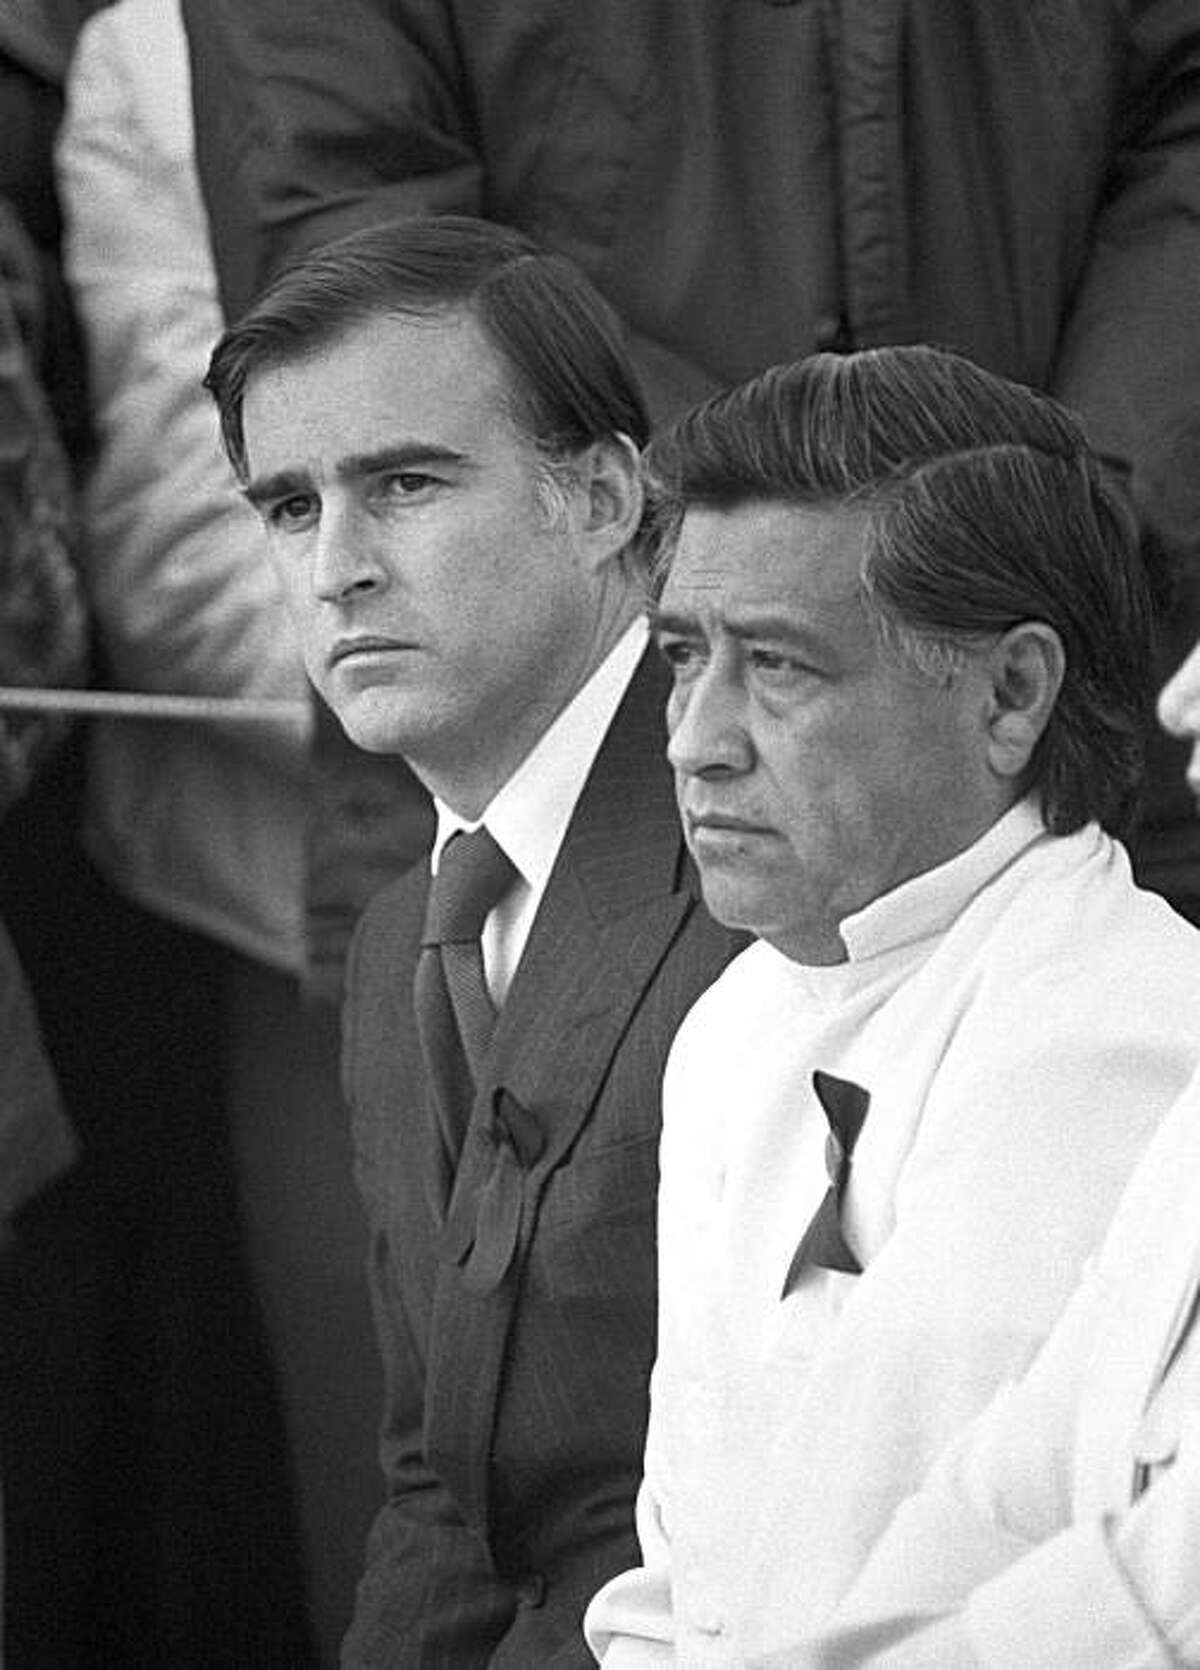 California Gov. Jerry Brown, left, and United Farm Workers President Cesar Chavez sit together during funeral Mass for slain farm worker Rufino Contreras in this California border city, Calexico, Wednesday, Feb. 14, 1979. Contreras was killed on Saturday during violence associated with the strike against Imperial County growers. Both Brown and Chavez spoke at the services. (AP Photo/Saxon)